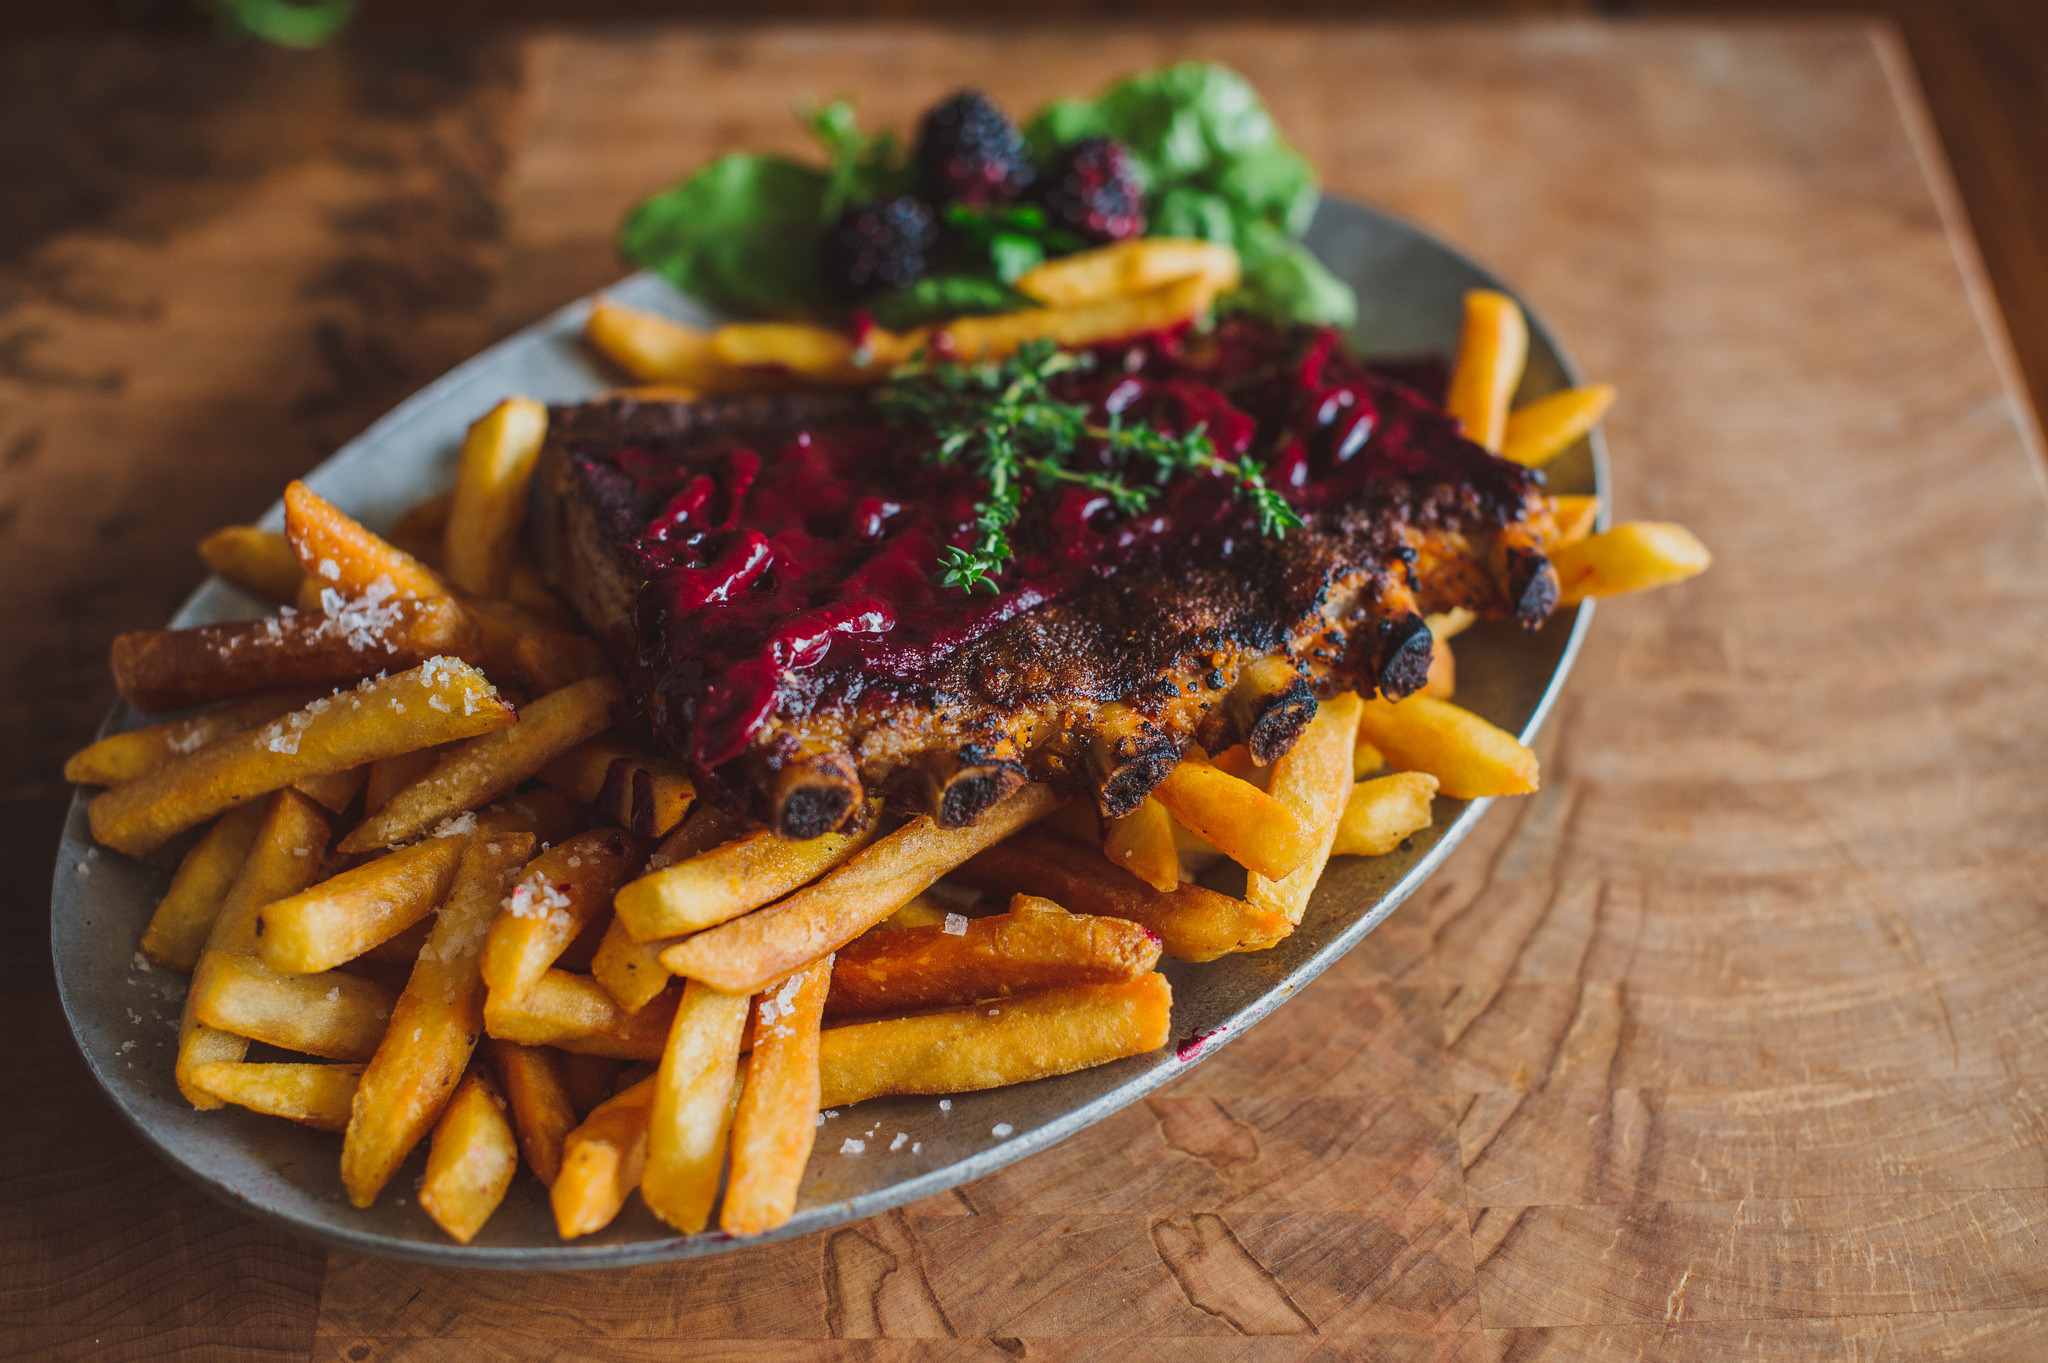 Southern Restaurant Charlotte Tupelo Honey Cafe French Fries 2000 150 Gr Steakhouse Salad Blackberry Habanero Ribs